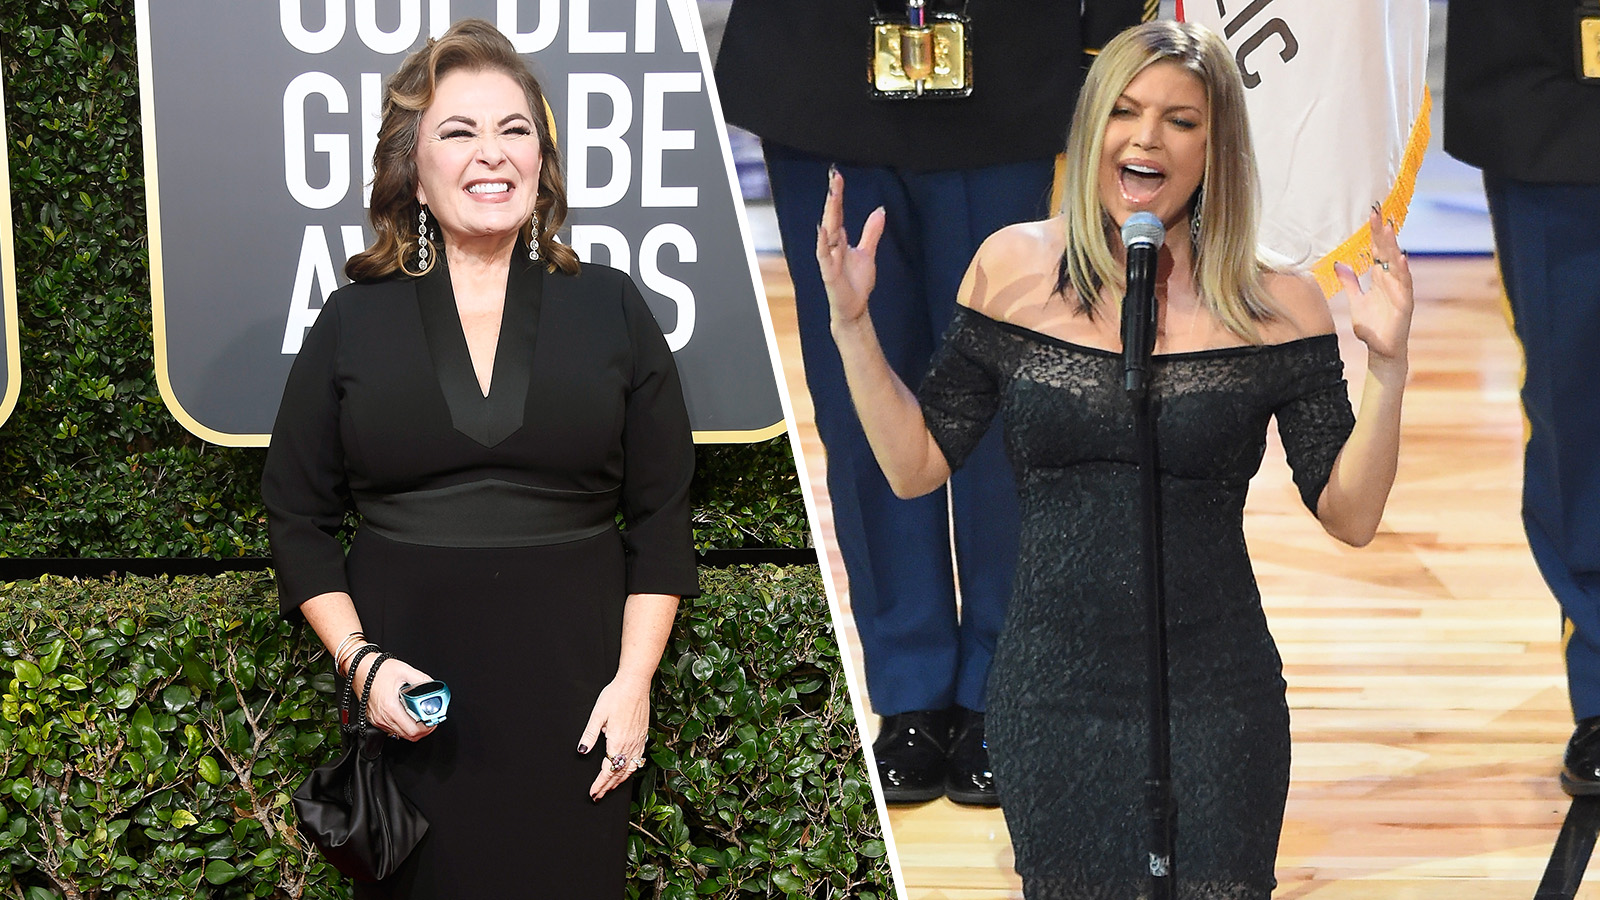 Roseanne Barr and Fergie